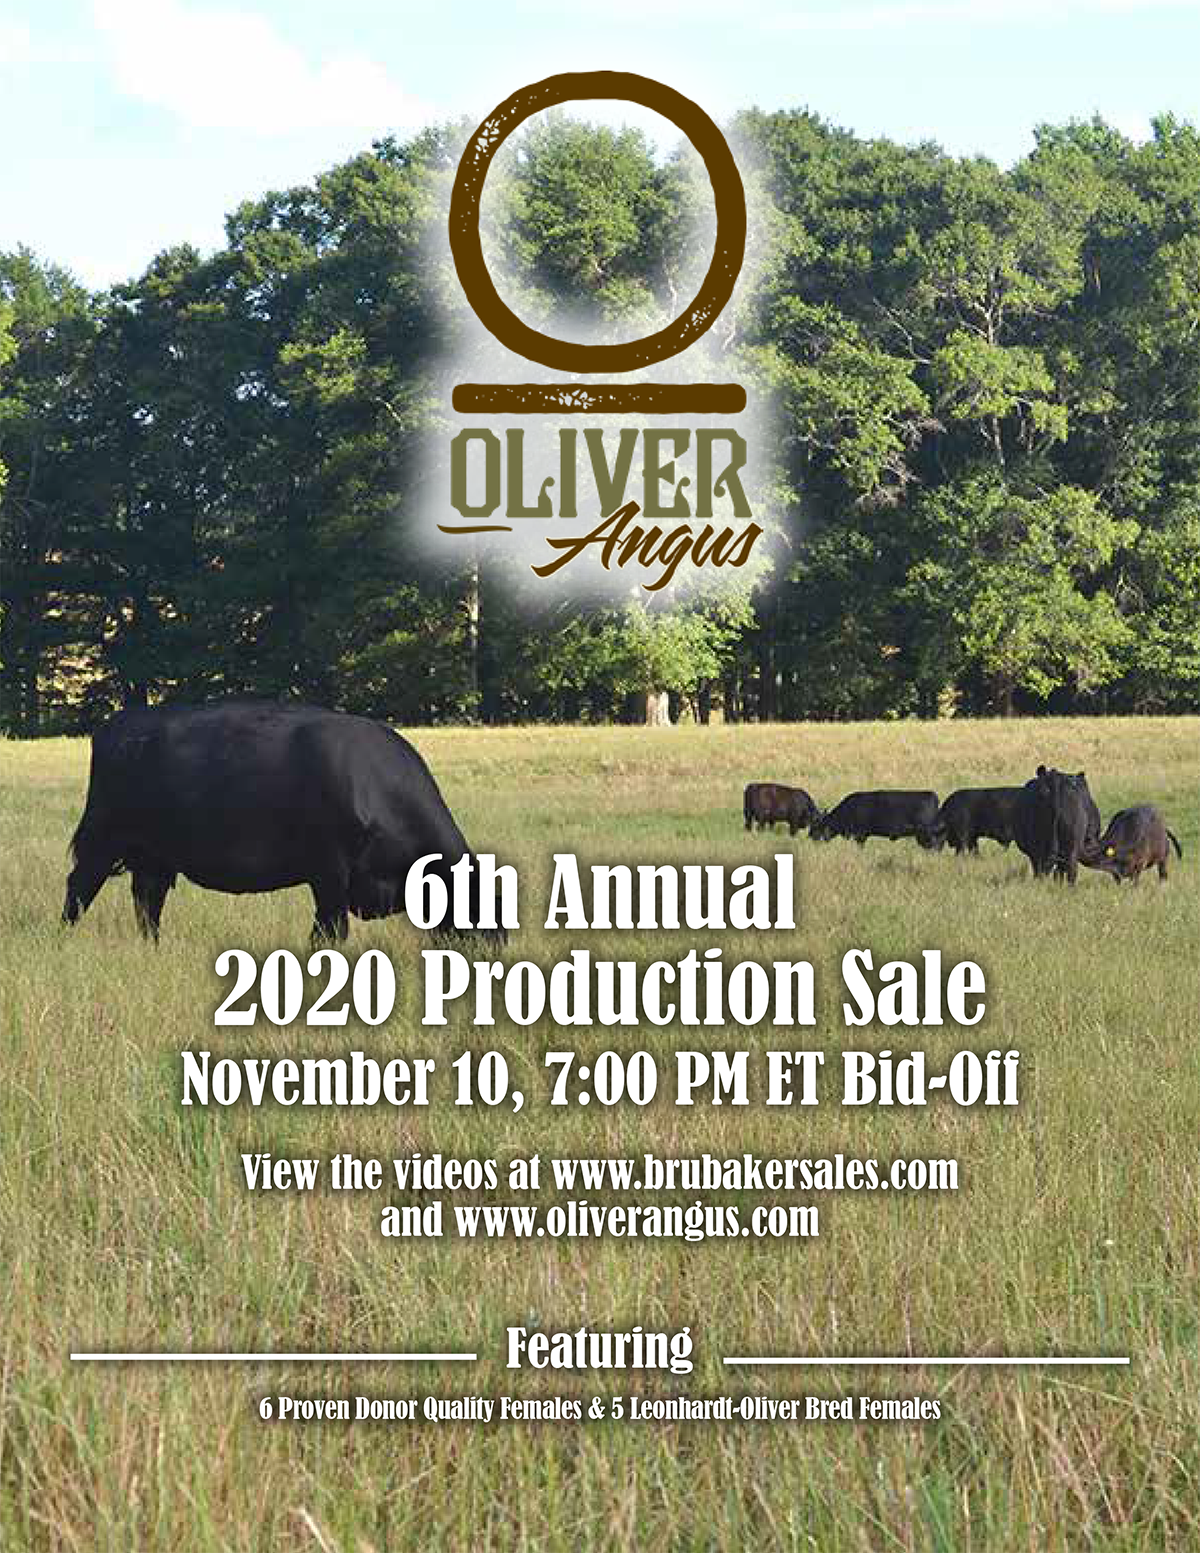 6th Annual Oliver Angus 2020 Production Sale